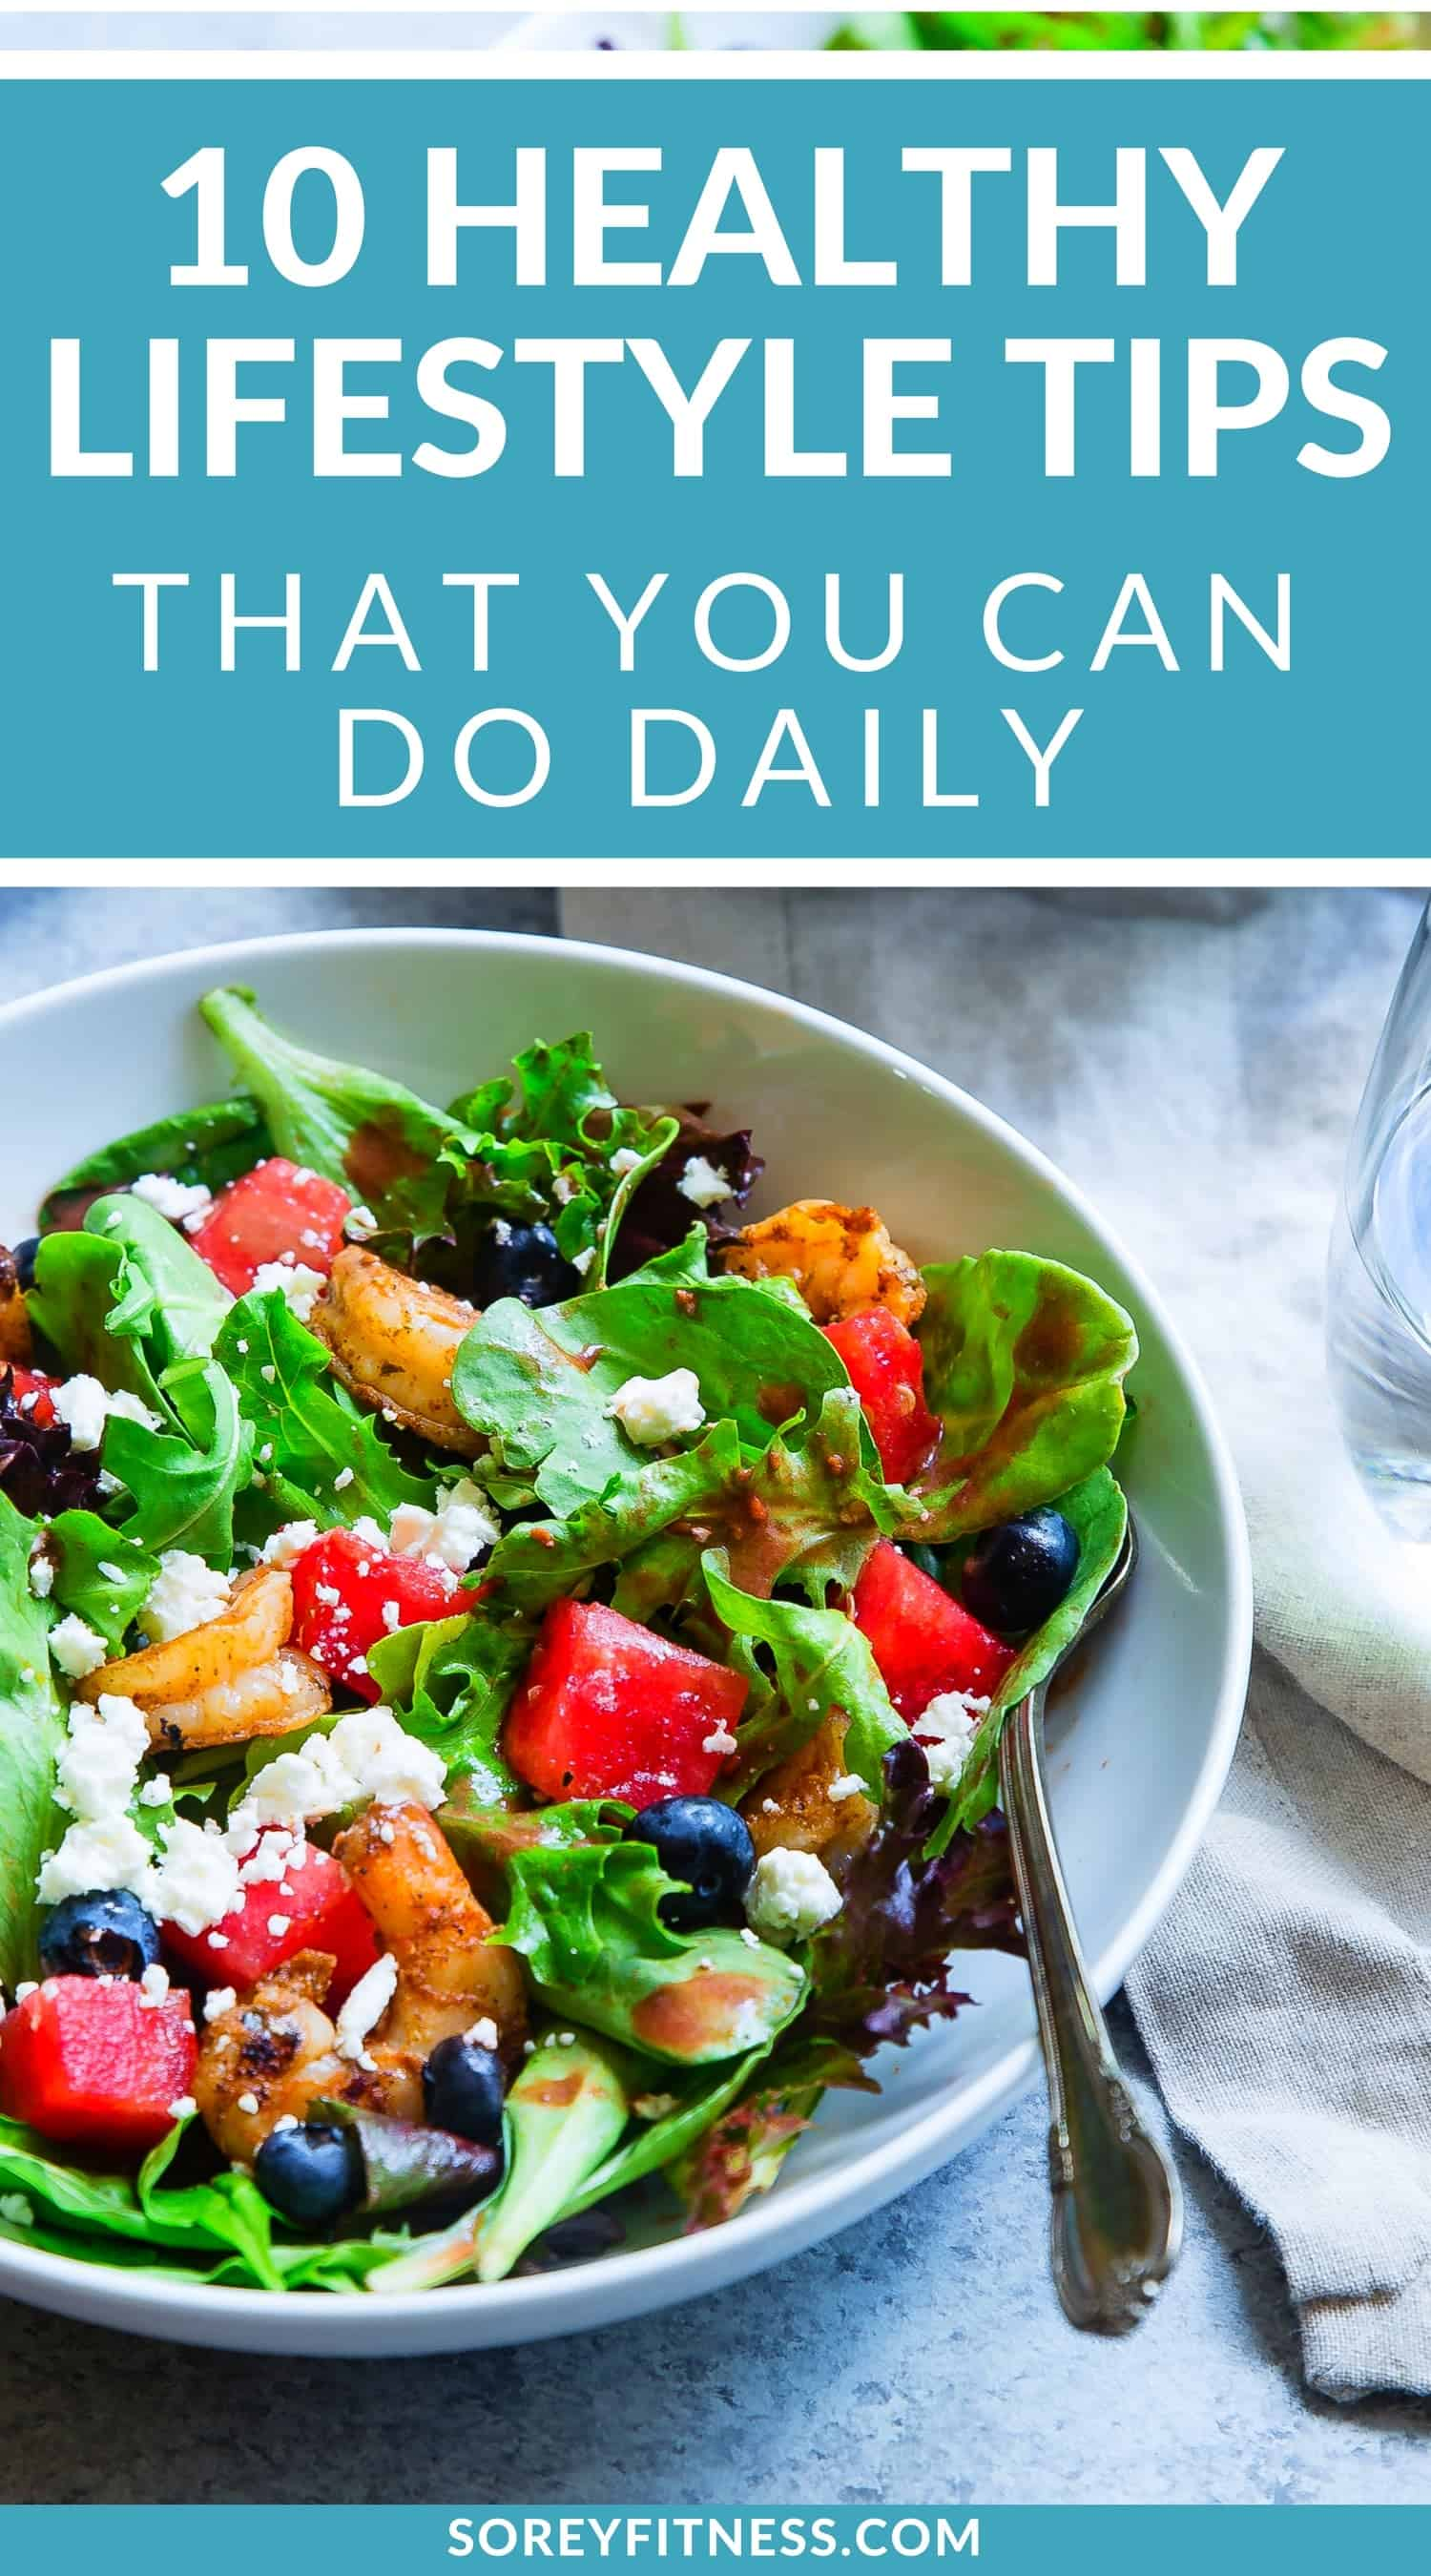 10 Healthy Lifestyle Tips Easy Habits You Can Do Daily